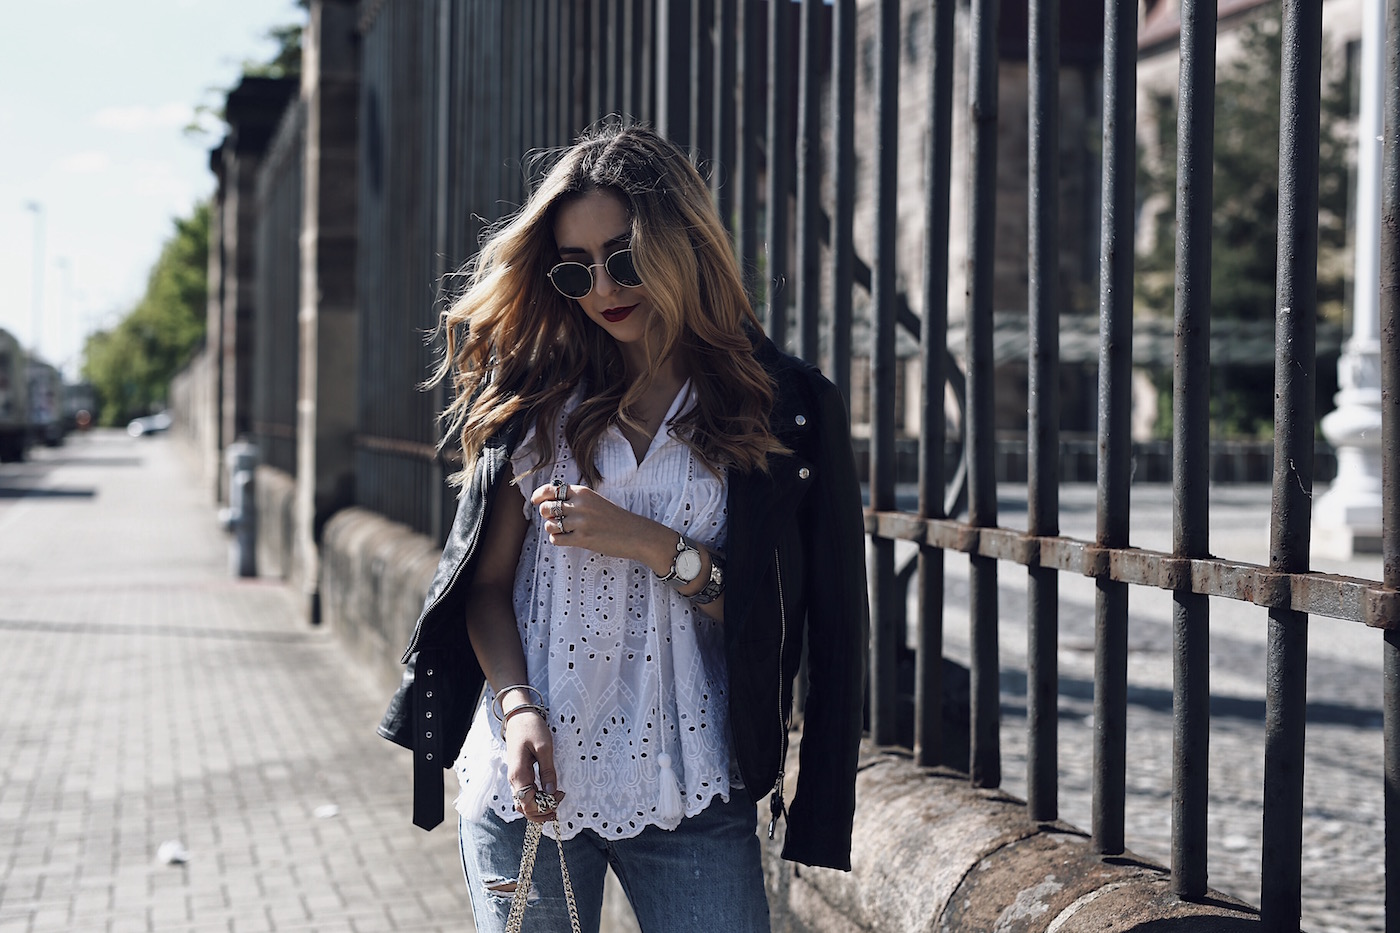 Lace Up Espadrilles Outfit with Openwork Blouse Levi's 501 CT and J.W. Anderson Pierce Bag